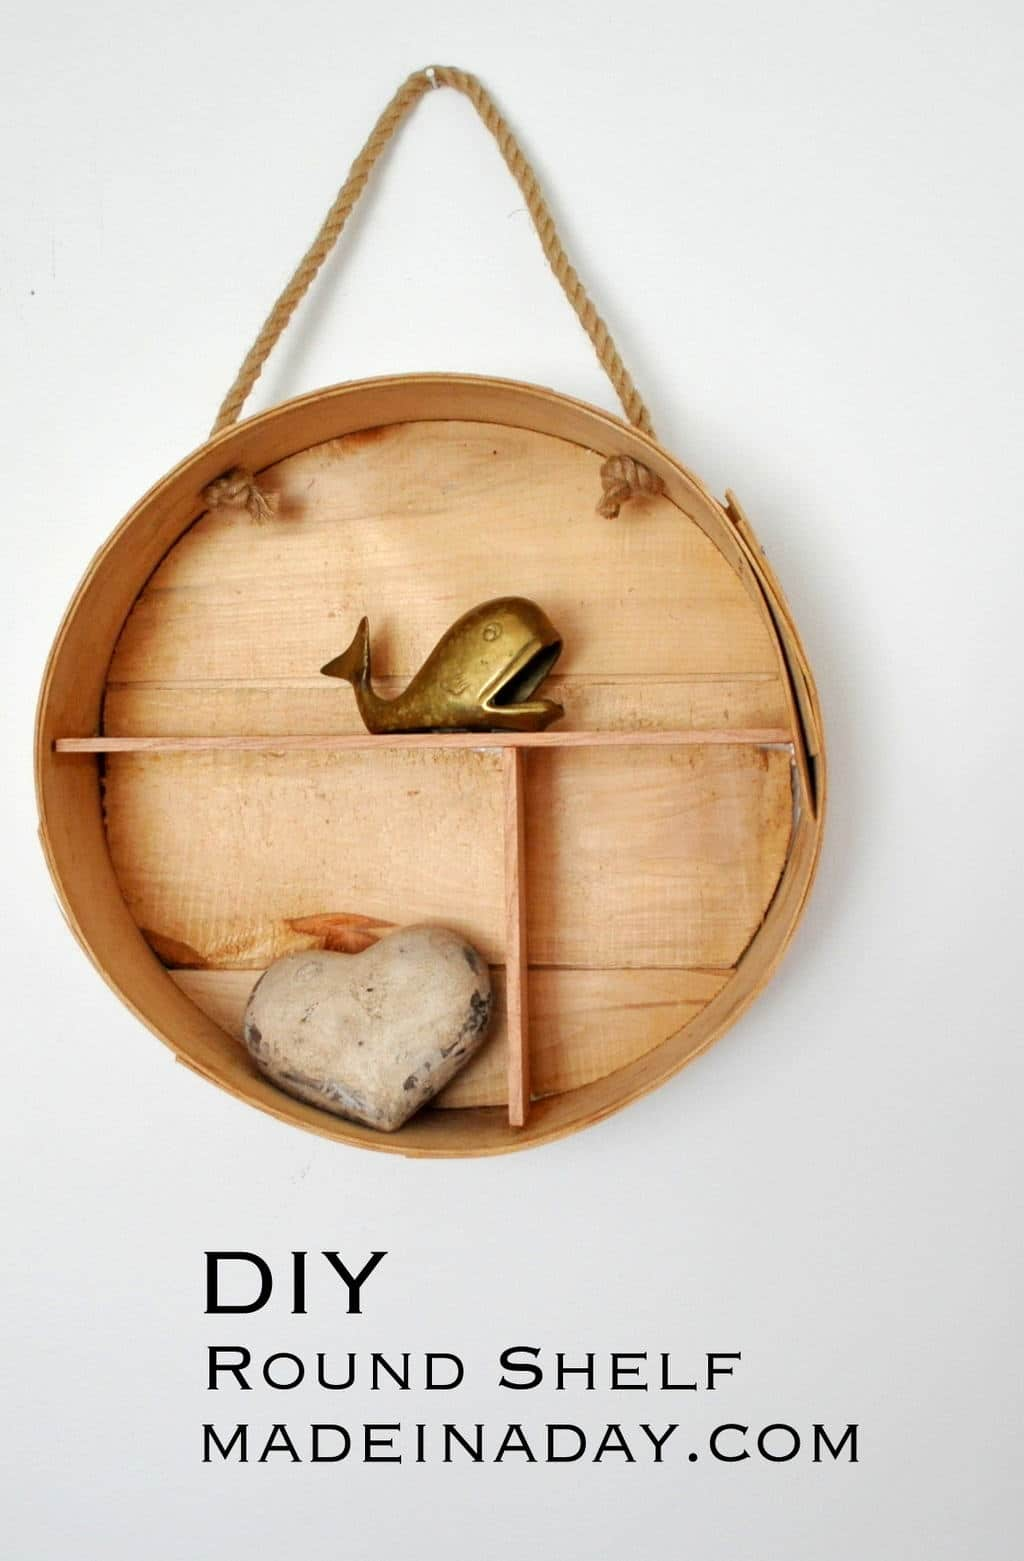 DIY Round Shelf from a Cheese Box